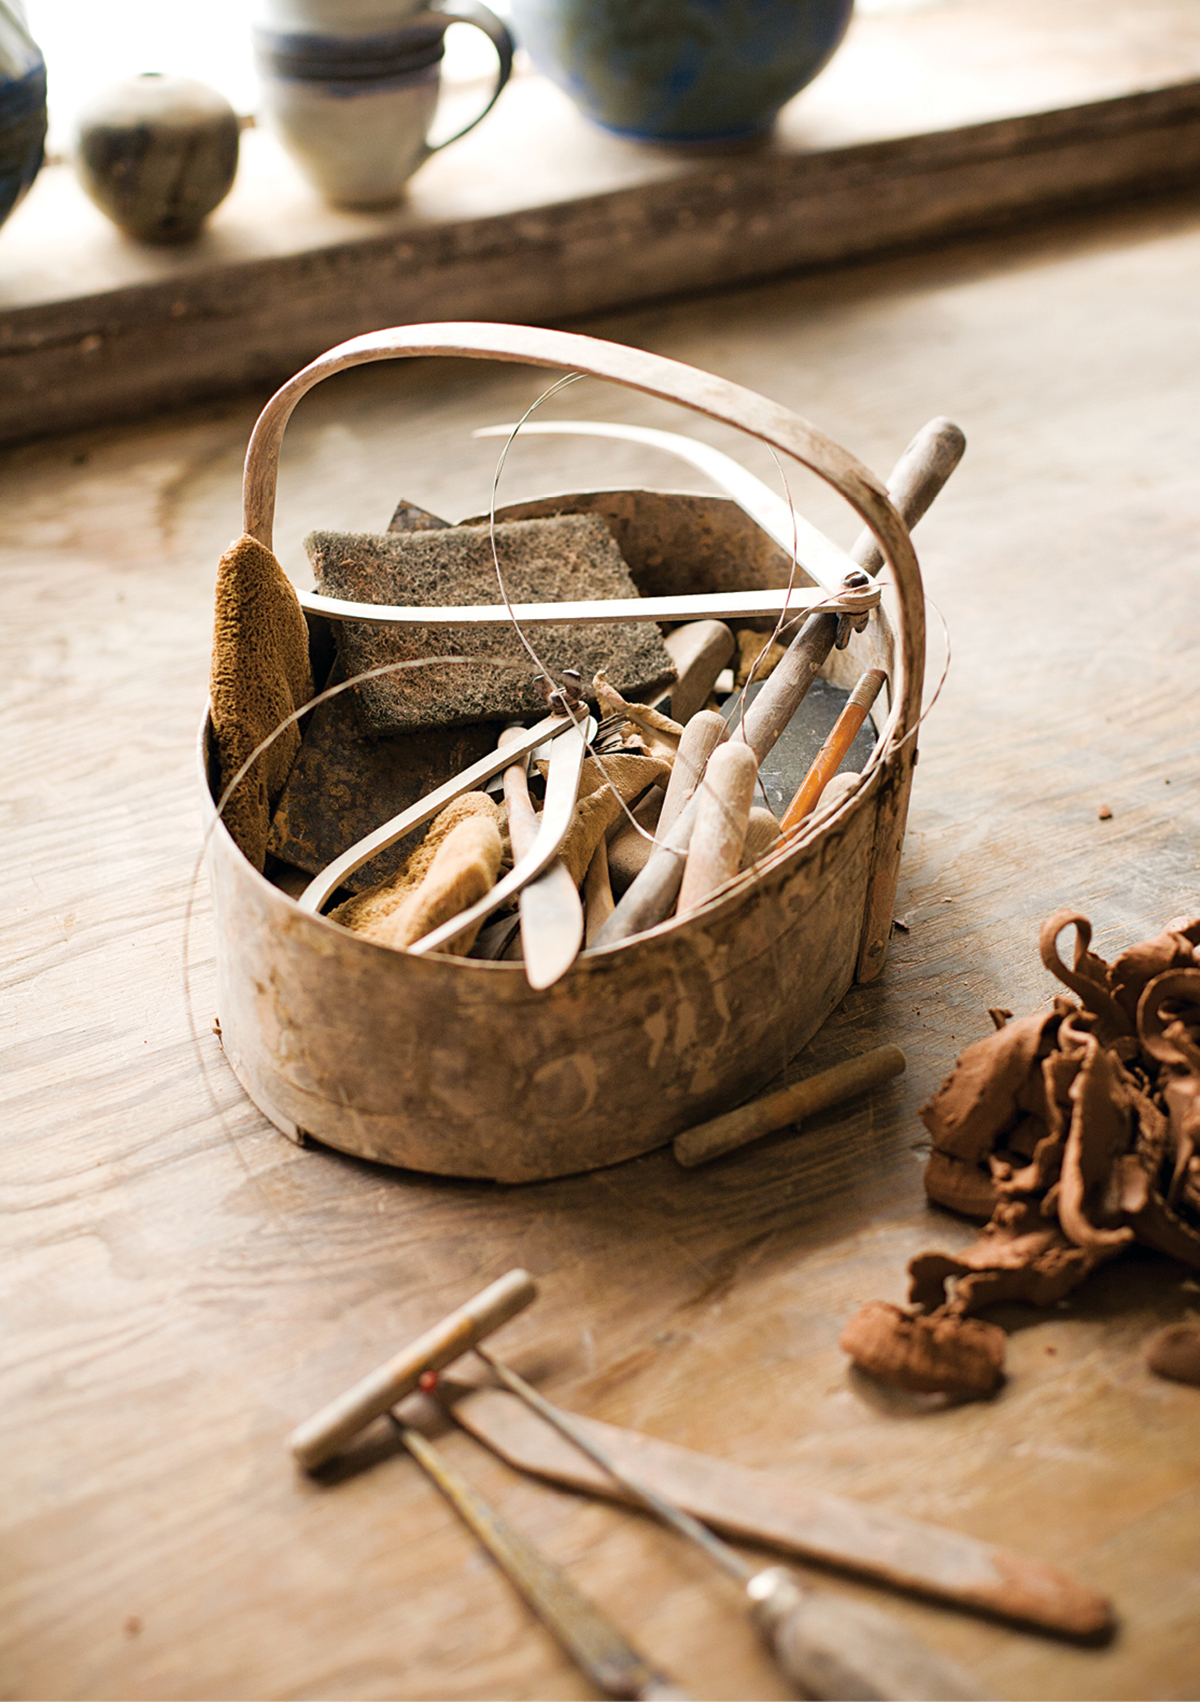 Potters' tools include knives, cutting wire, and calipers.